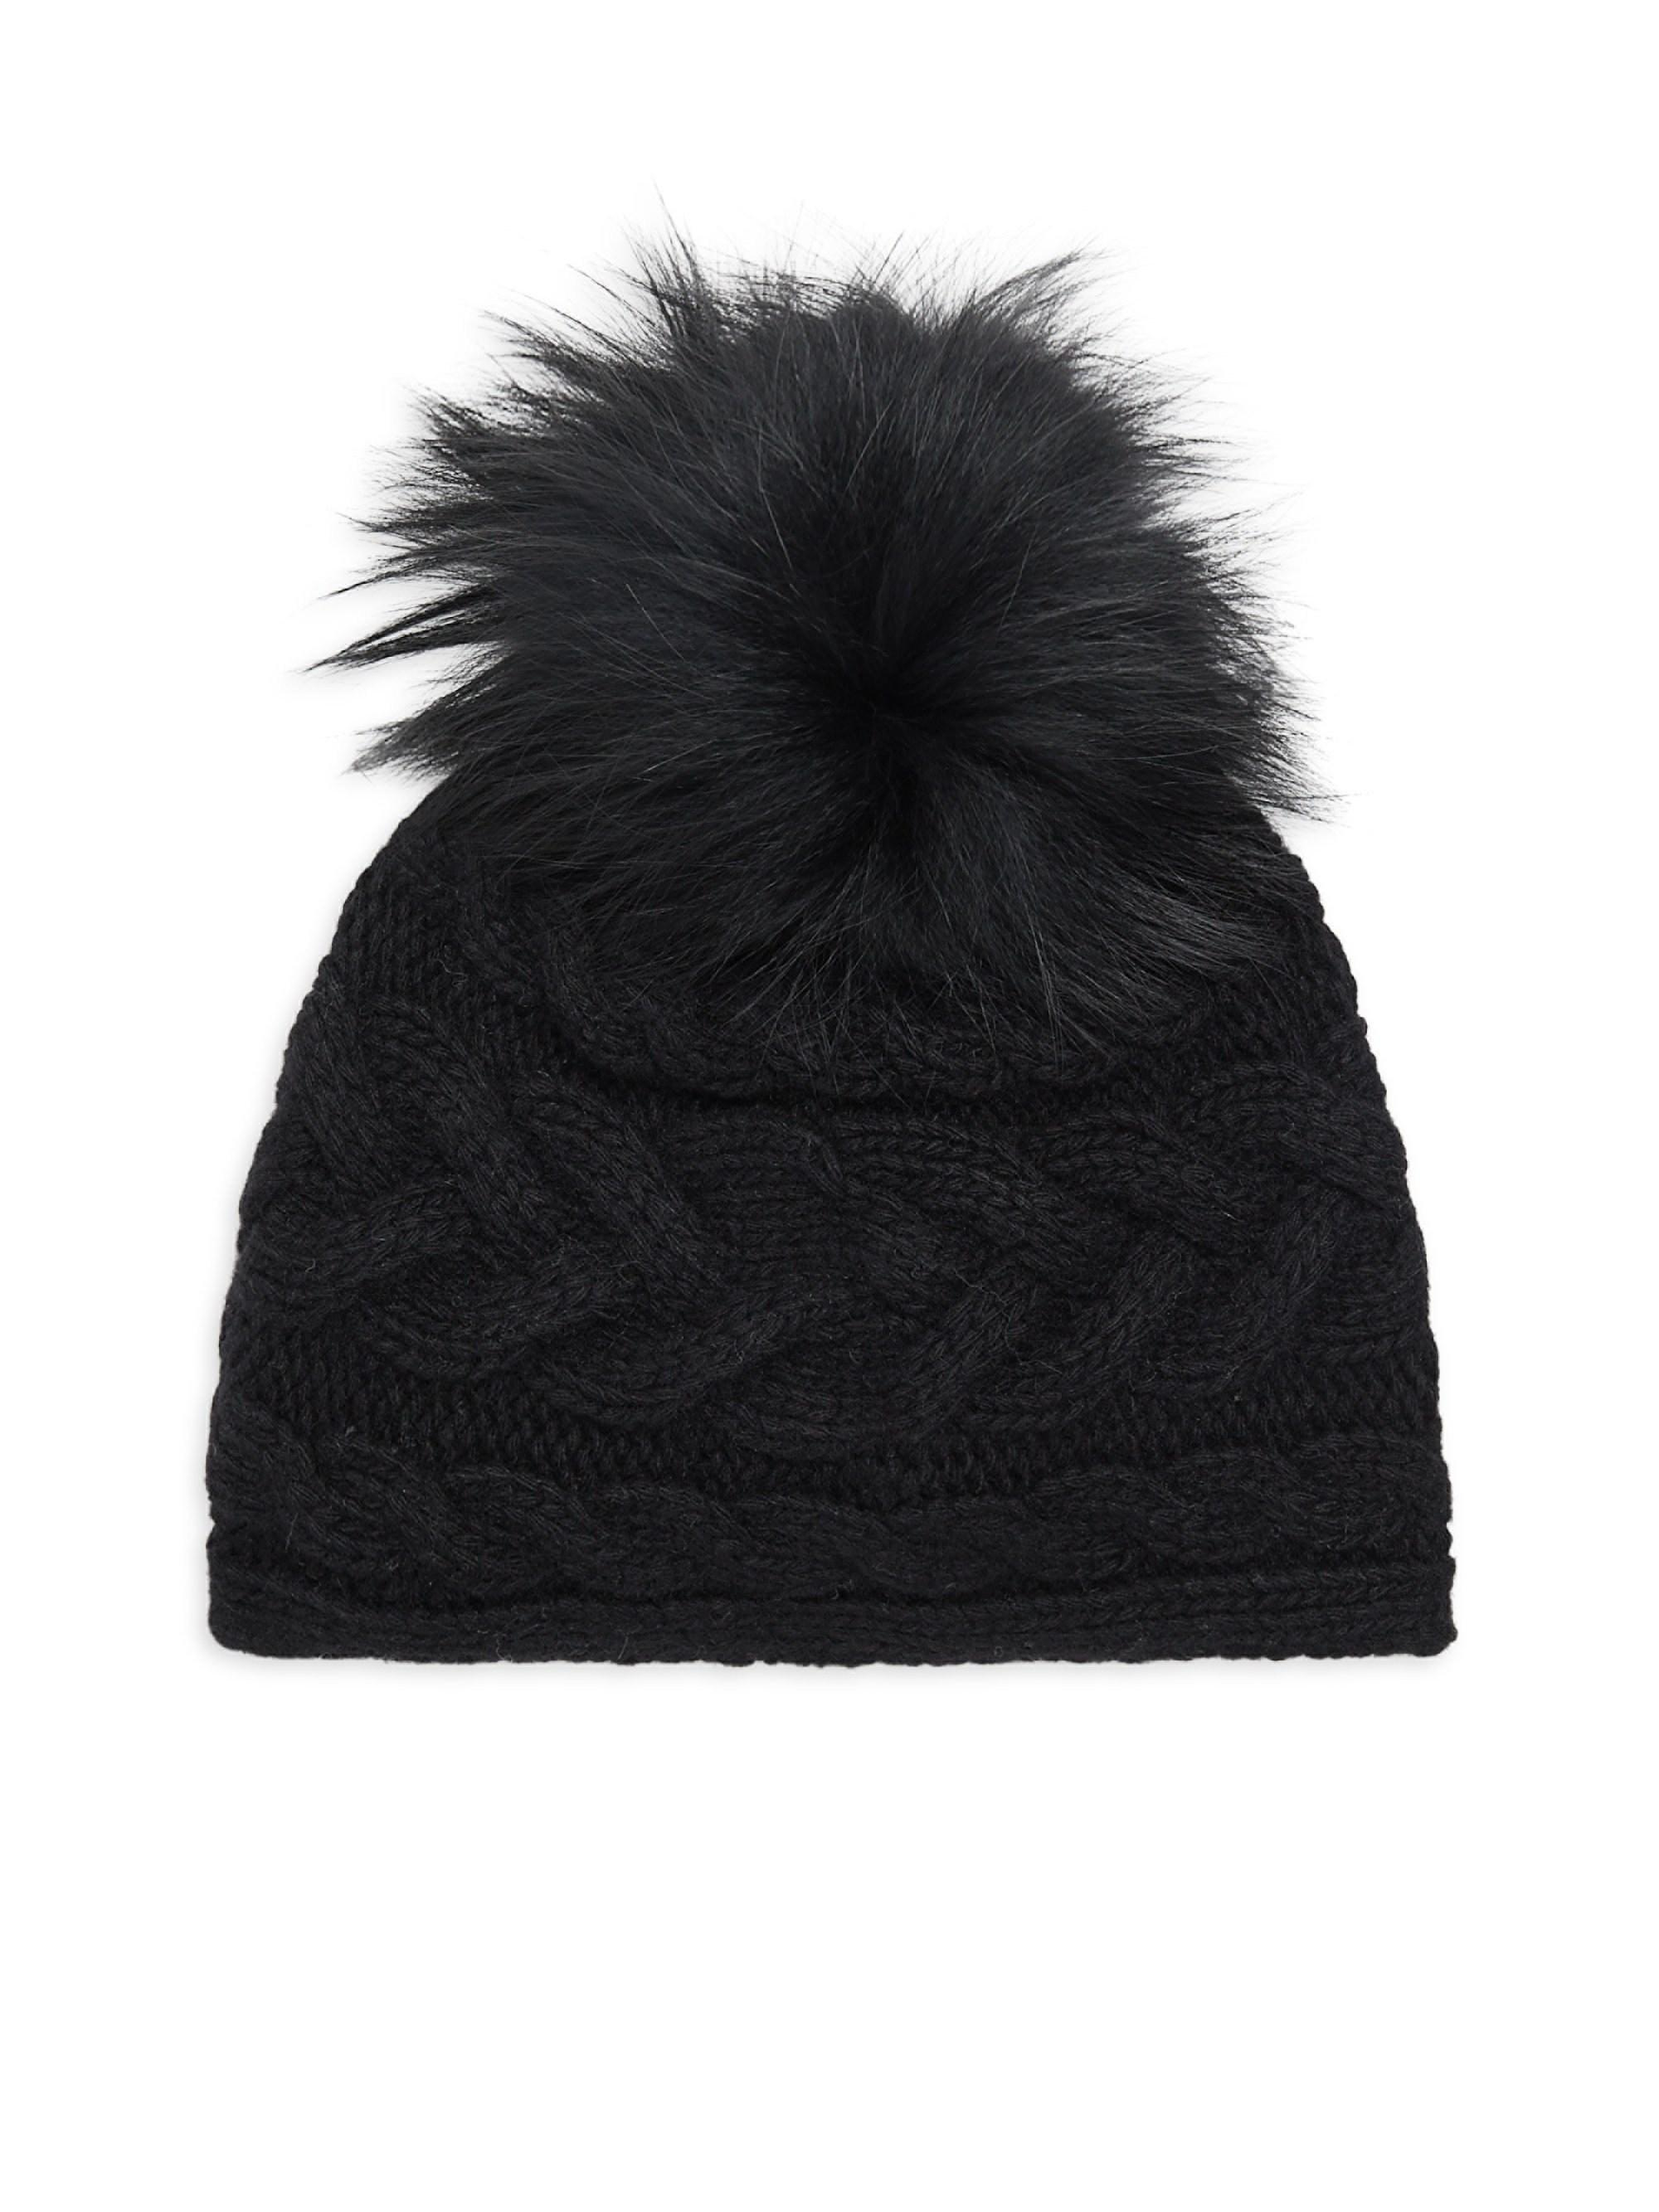 Portolano Cable Knit Fox Fur Pompom Hat in Black - Lyst a30c34d60be7